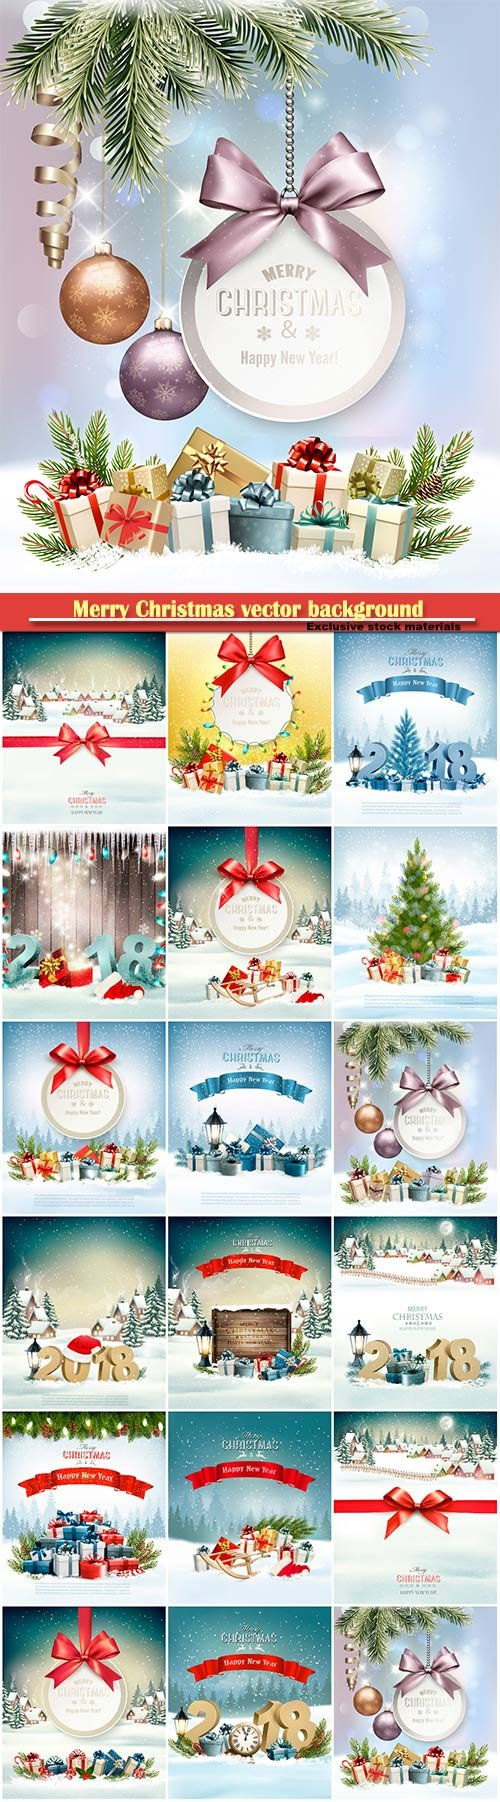 Merry Christmas vector background with branches of tree and colorful gift boxes